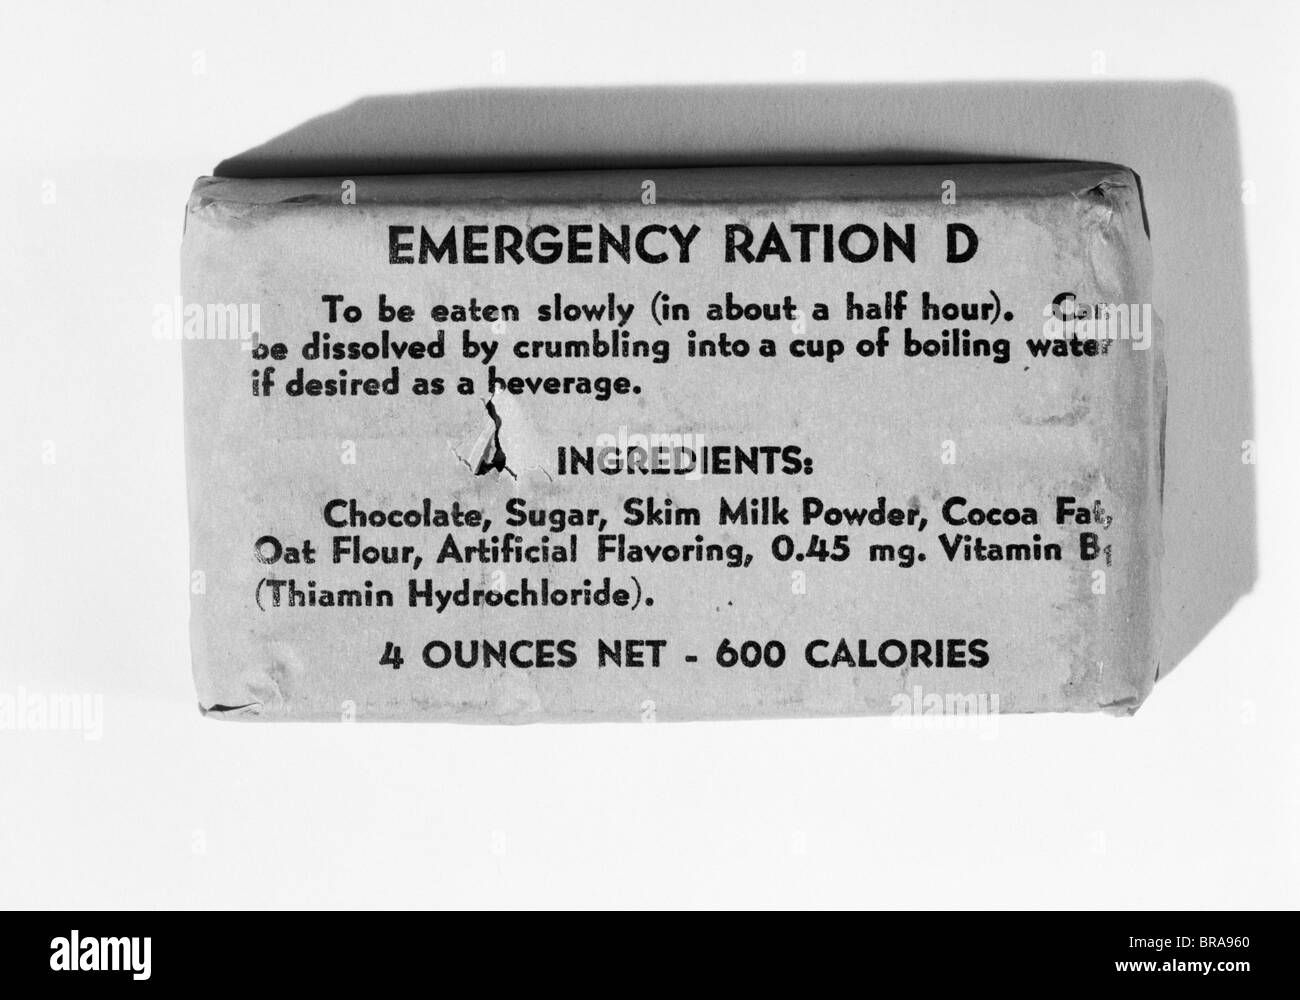 1940s EMERGENCY RATION D SURVIVAL KIT FOOD INSTRUCTIONS MILITARY PROVISION - Stock Image